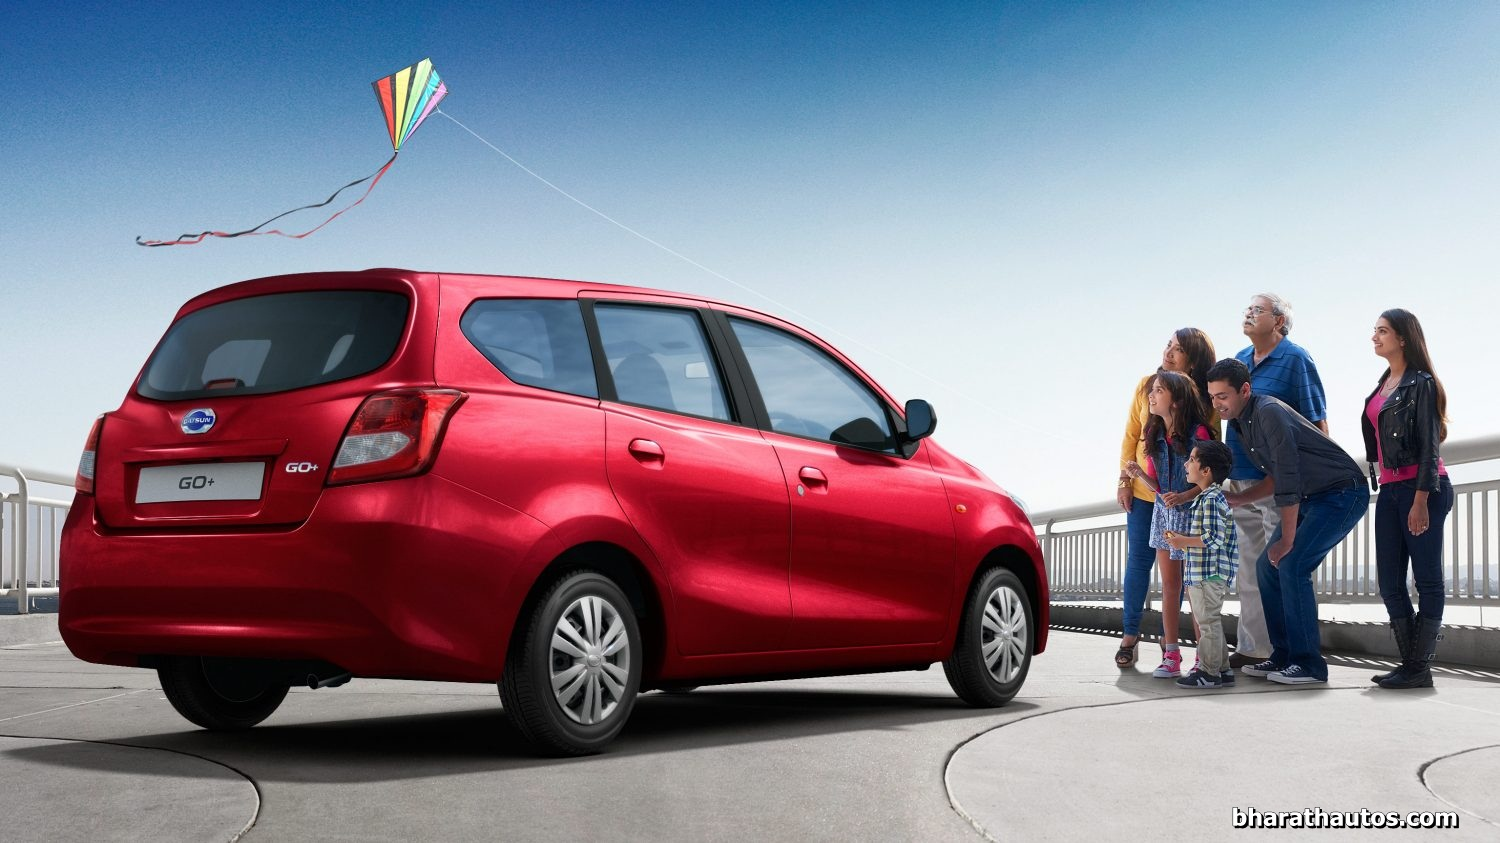 Nissan 7 Seater Cars Datsun Go 43 7 Seater Mpv Launched In India At Rs 3 79 Lakh